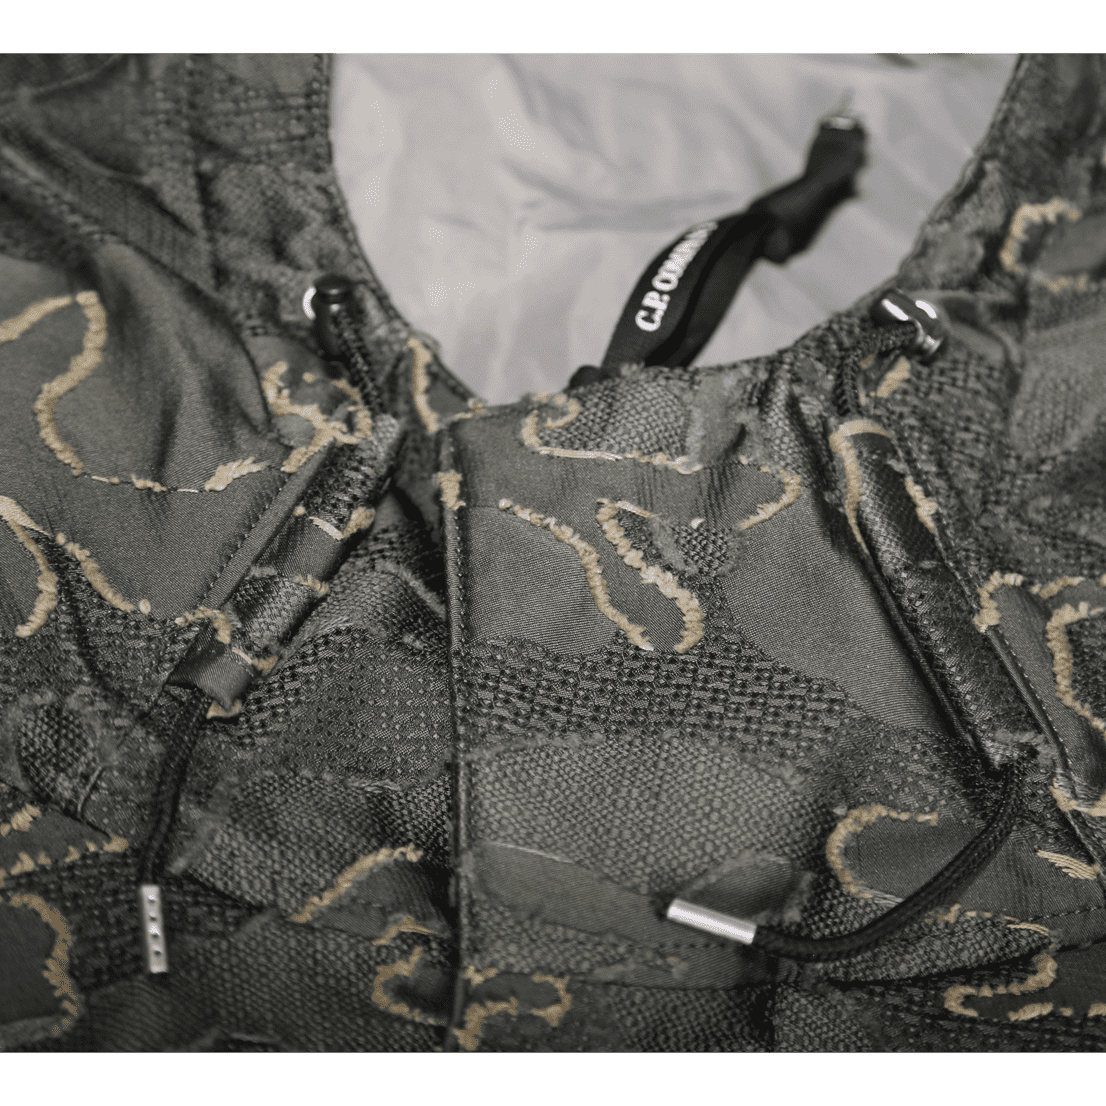 Cabinero Stiles Berlin C.P.Company Camouflage Jacket #03CMOW179A-005128W AW17-18.3